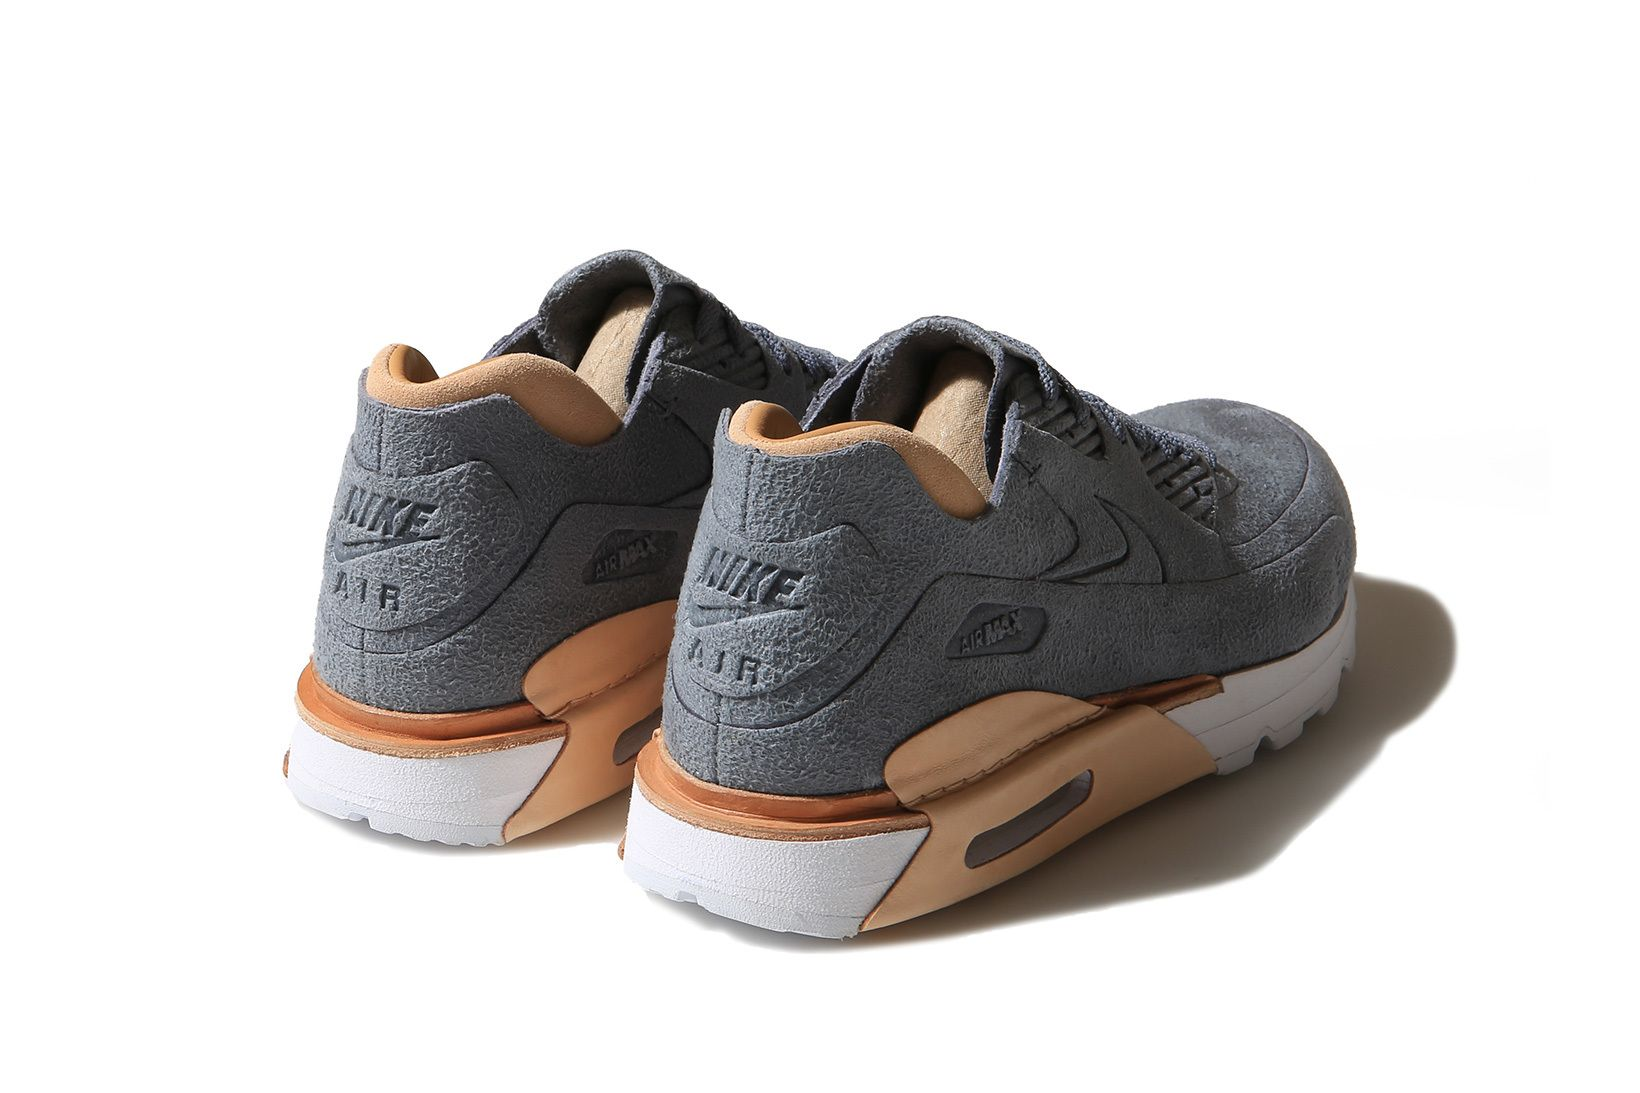 14c8bc07e4 The Classic Nike Air Max 90 Gets a Luxurious Suede Makeover | Kicks ...